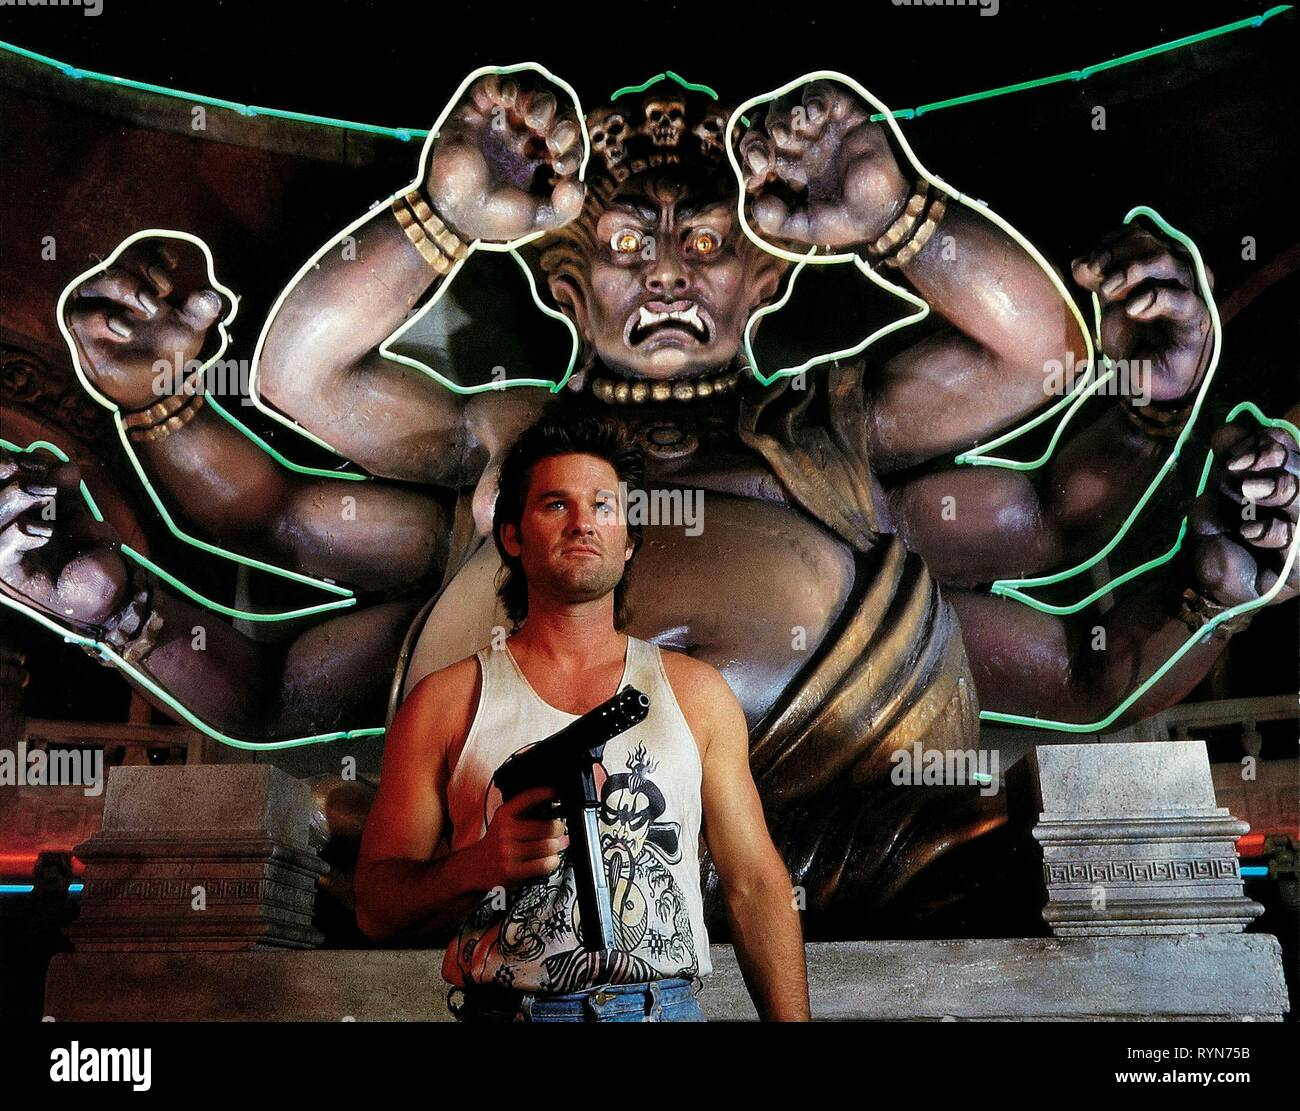 Kurt Russell Big Trouble In Little China 1986 Stock Photo